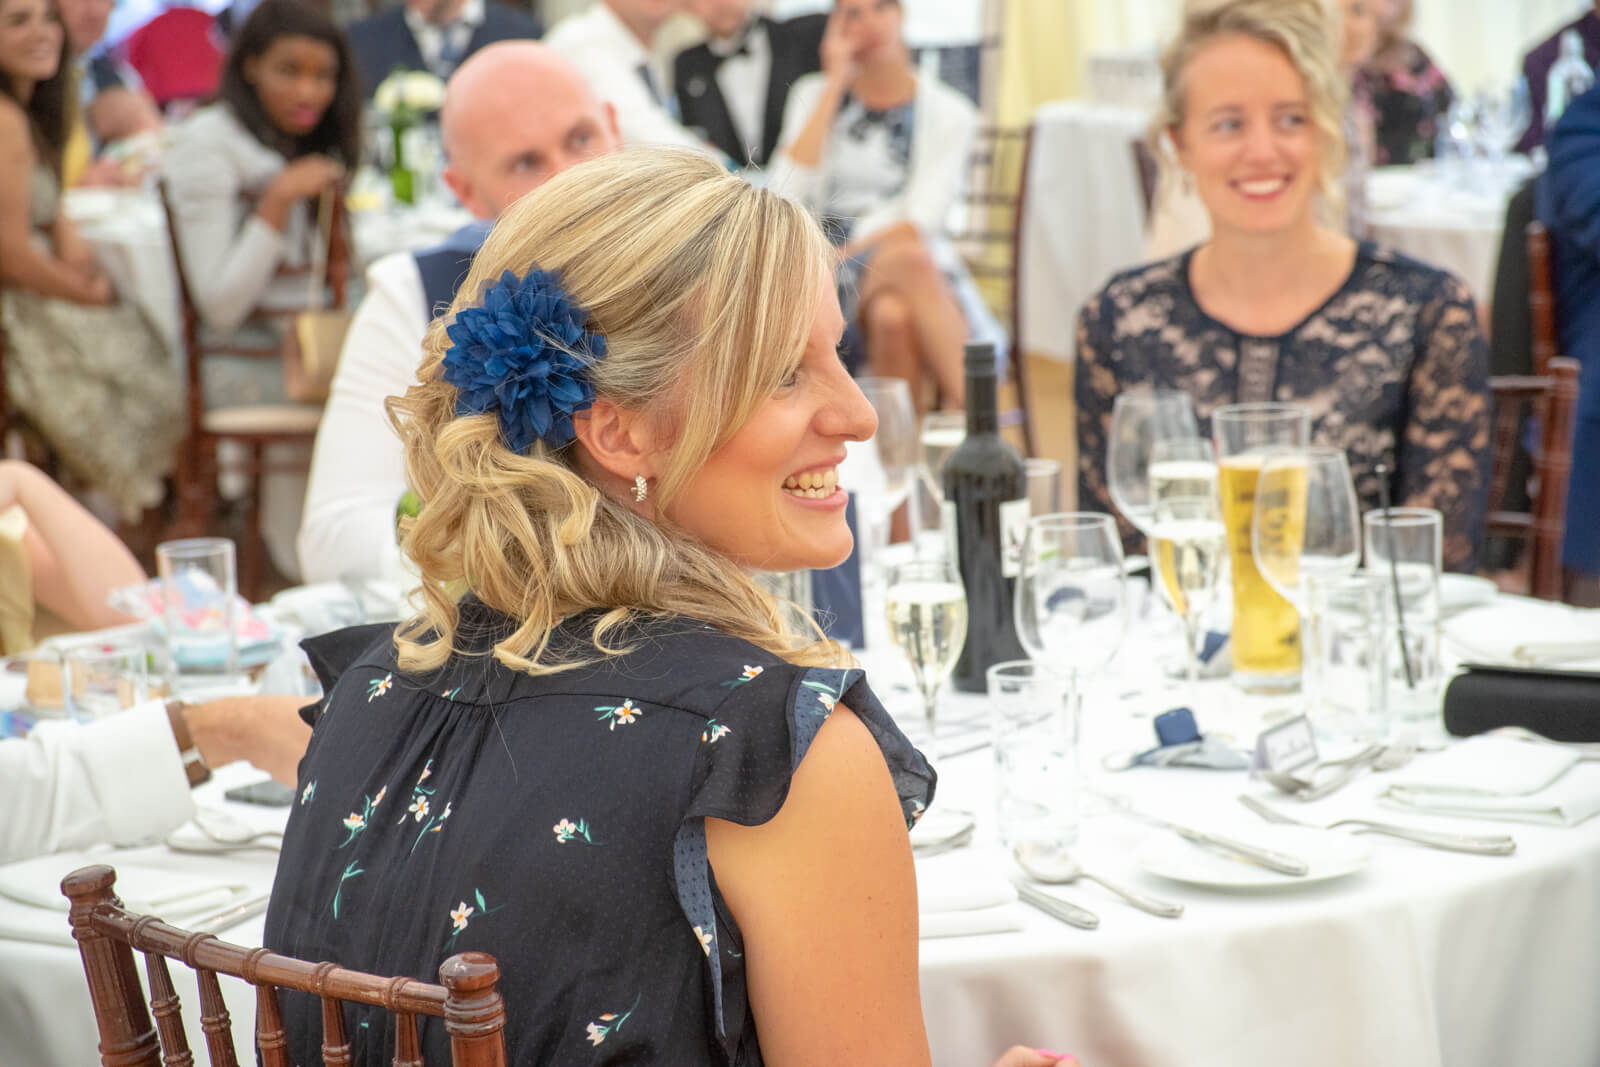 Blonde woman laughs at wedding speeches